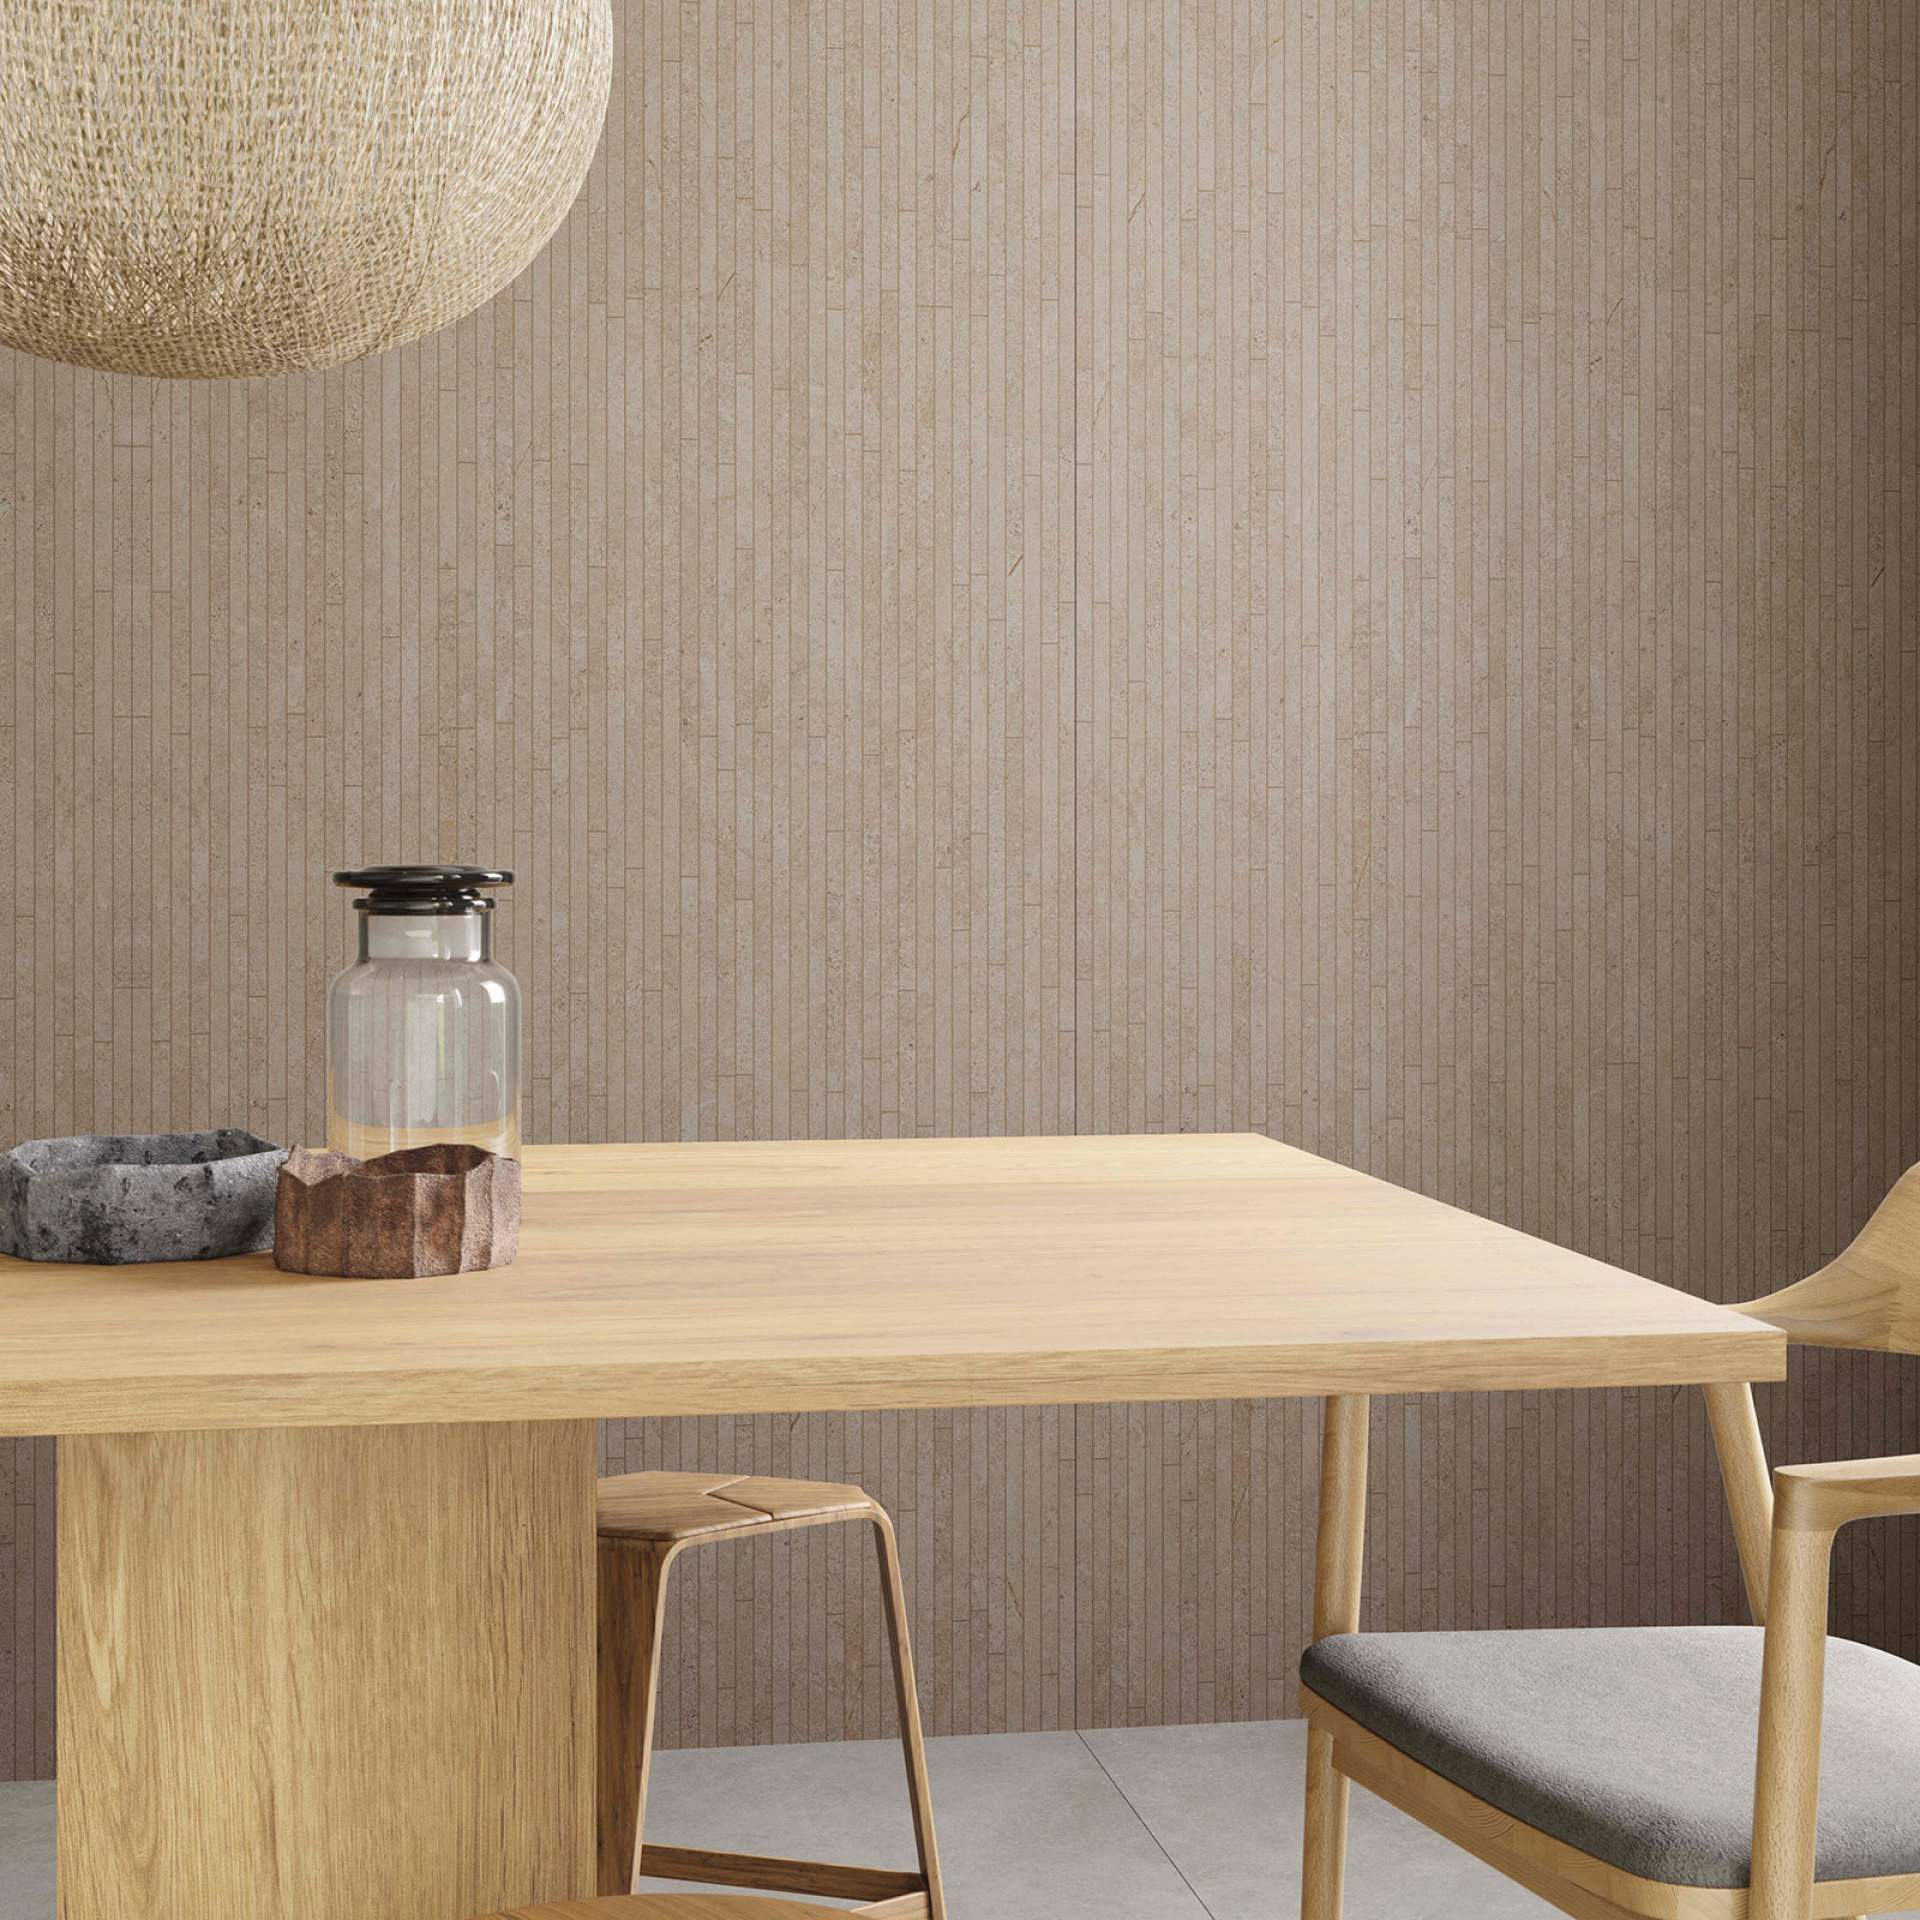 Evoke Dining Room setting with Moka Tile